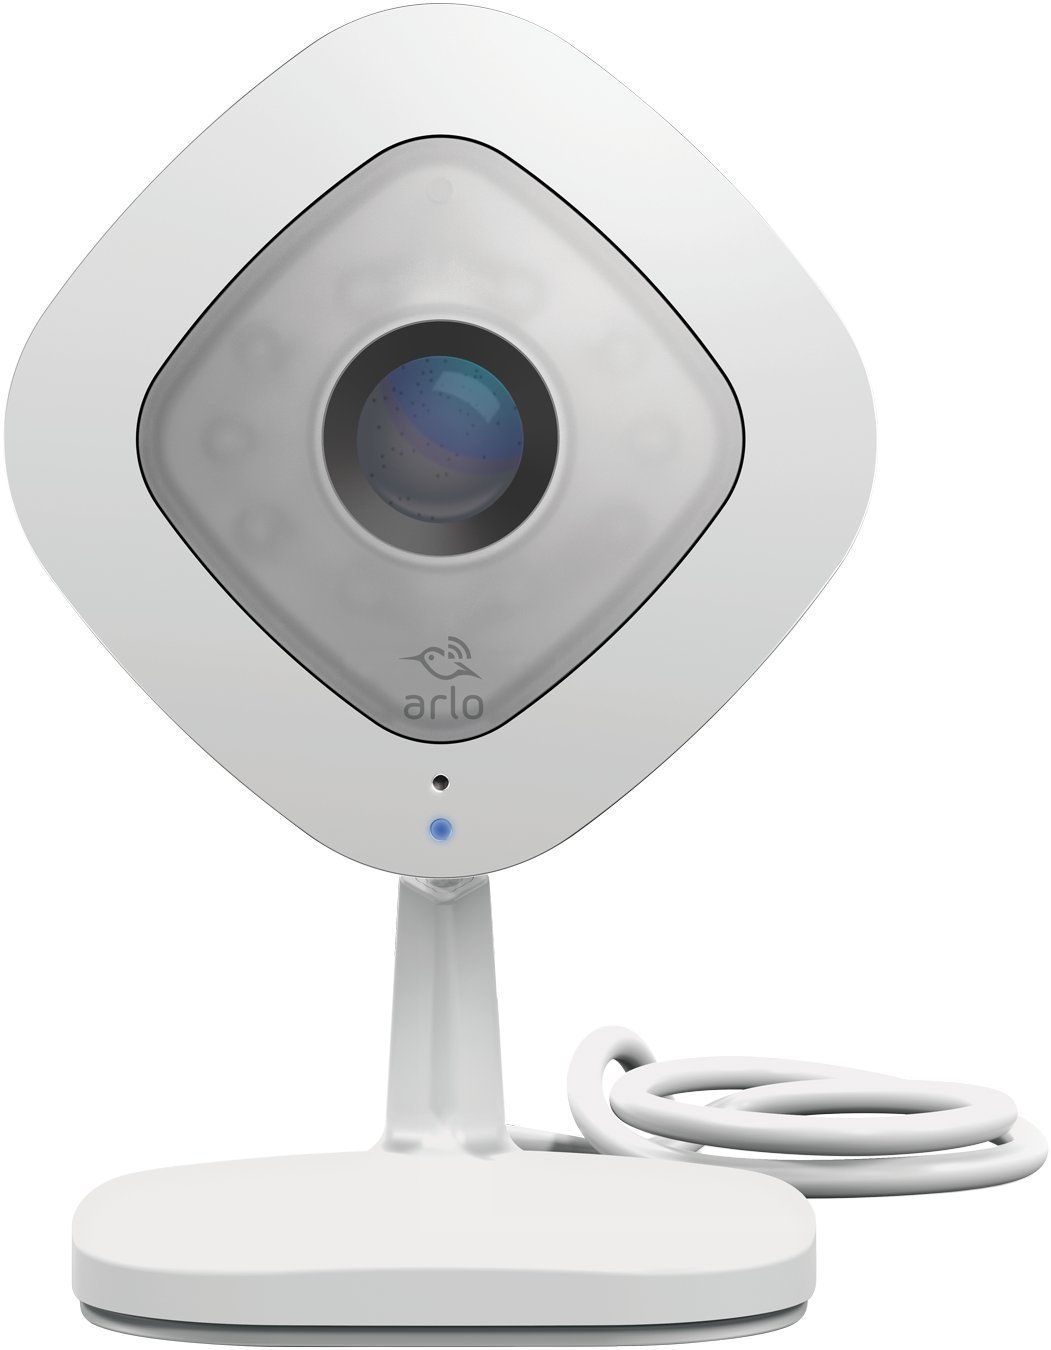 With your purchase of the [Arlo-Q security camera](https://www.amazon.com/dp/B017B2043W?tag=toolstoysdeals-20), you get free cloud storage for your footage.